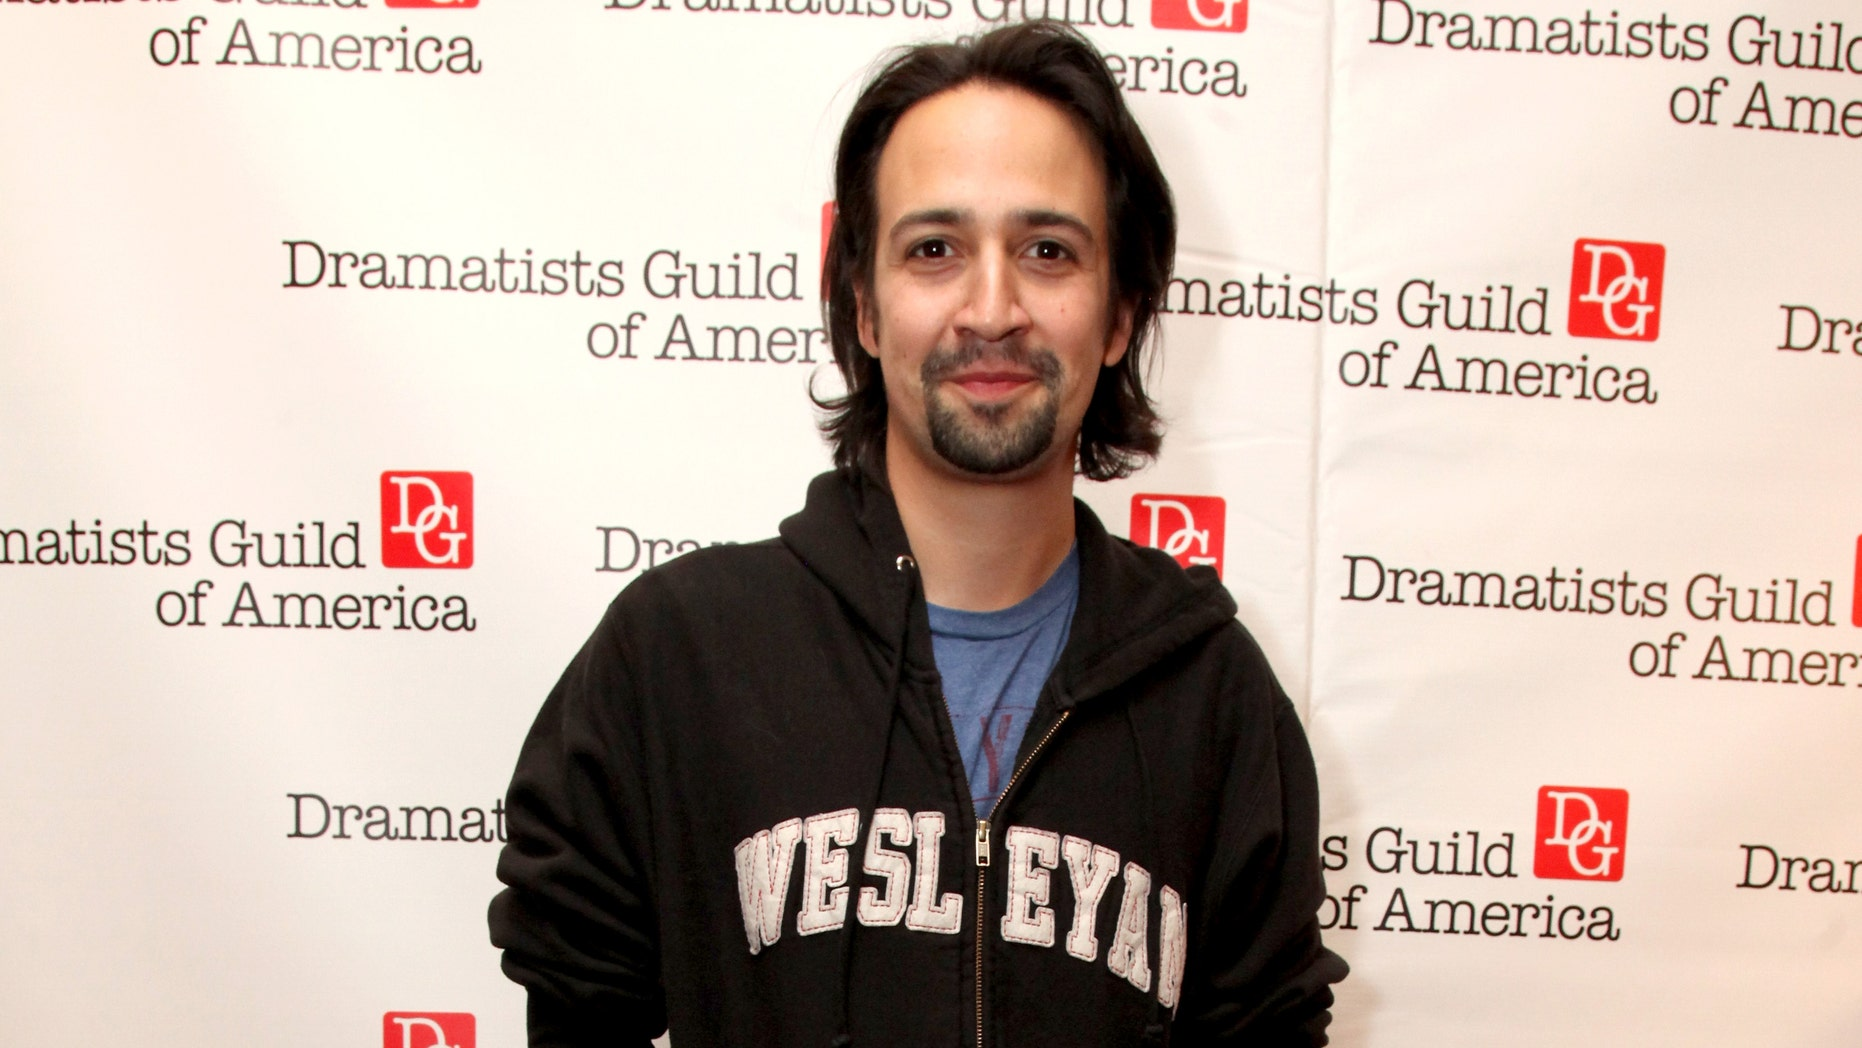 NEW YORK, NY - APRIL 21:  Lin-Manuel Miranda attends the first Anti-Piracy Awareness Event at The Dramatists Guild of America on April 21, 2014 in New York City.  (Photo by Donald Bowers/Getty Images for The Dramatists Guild)